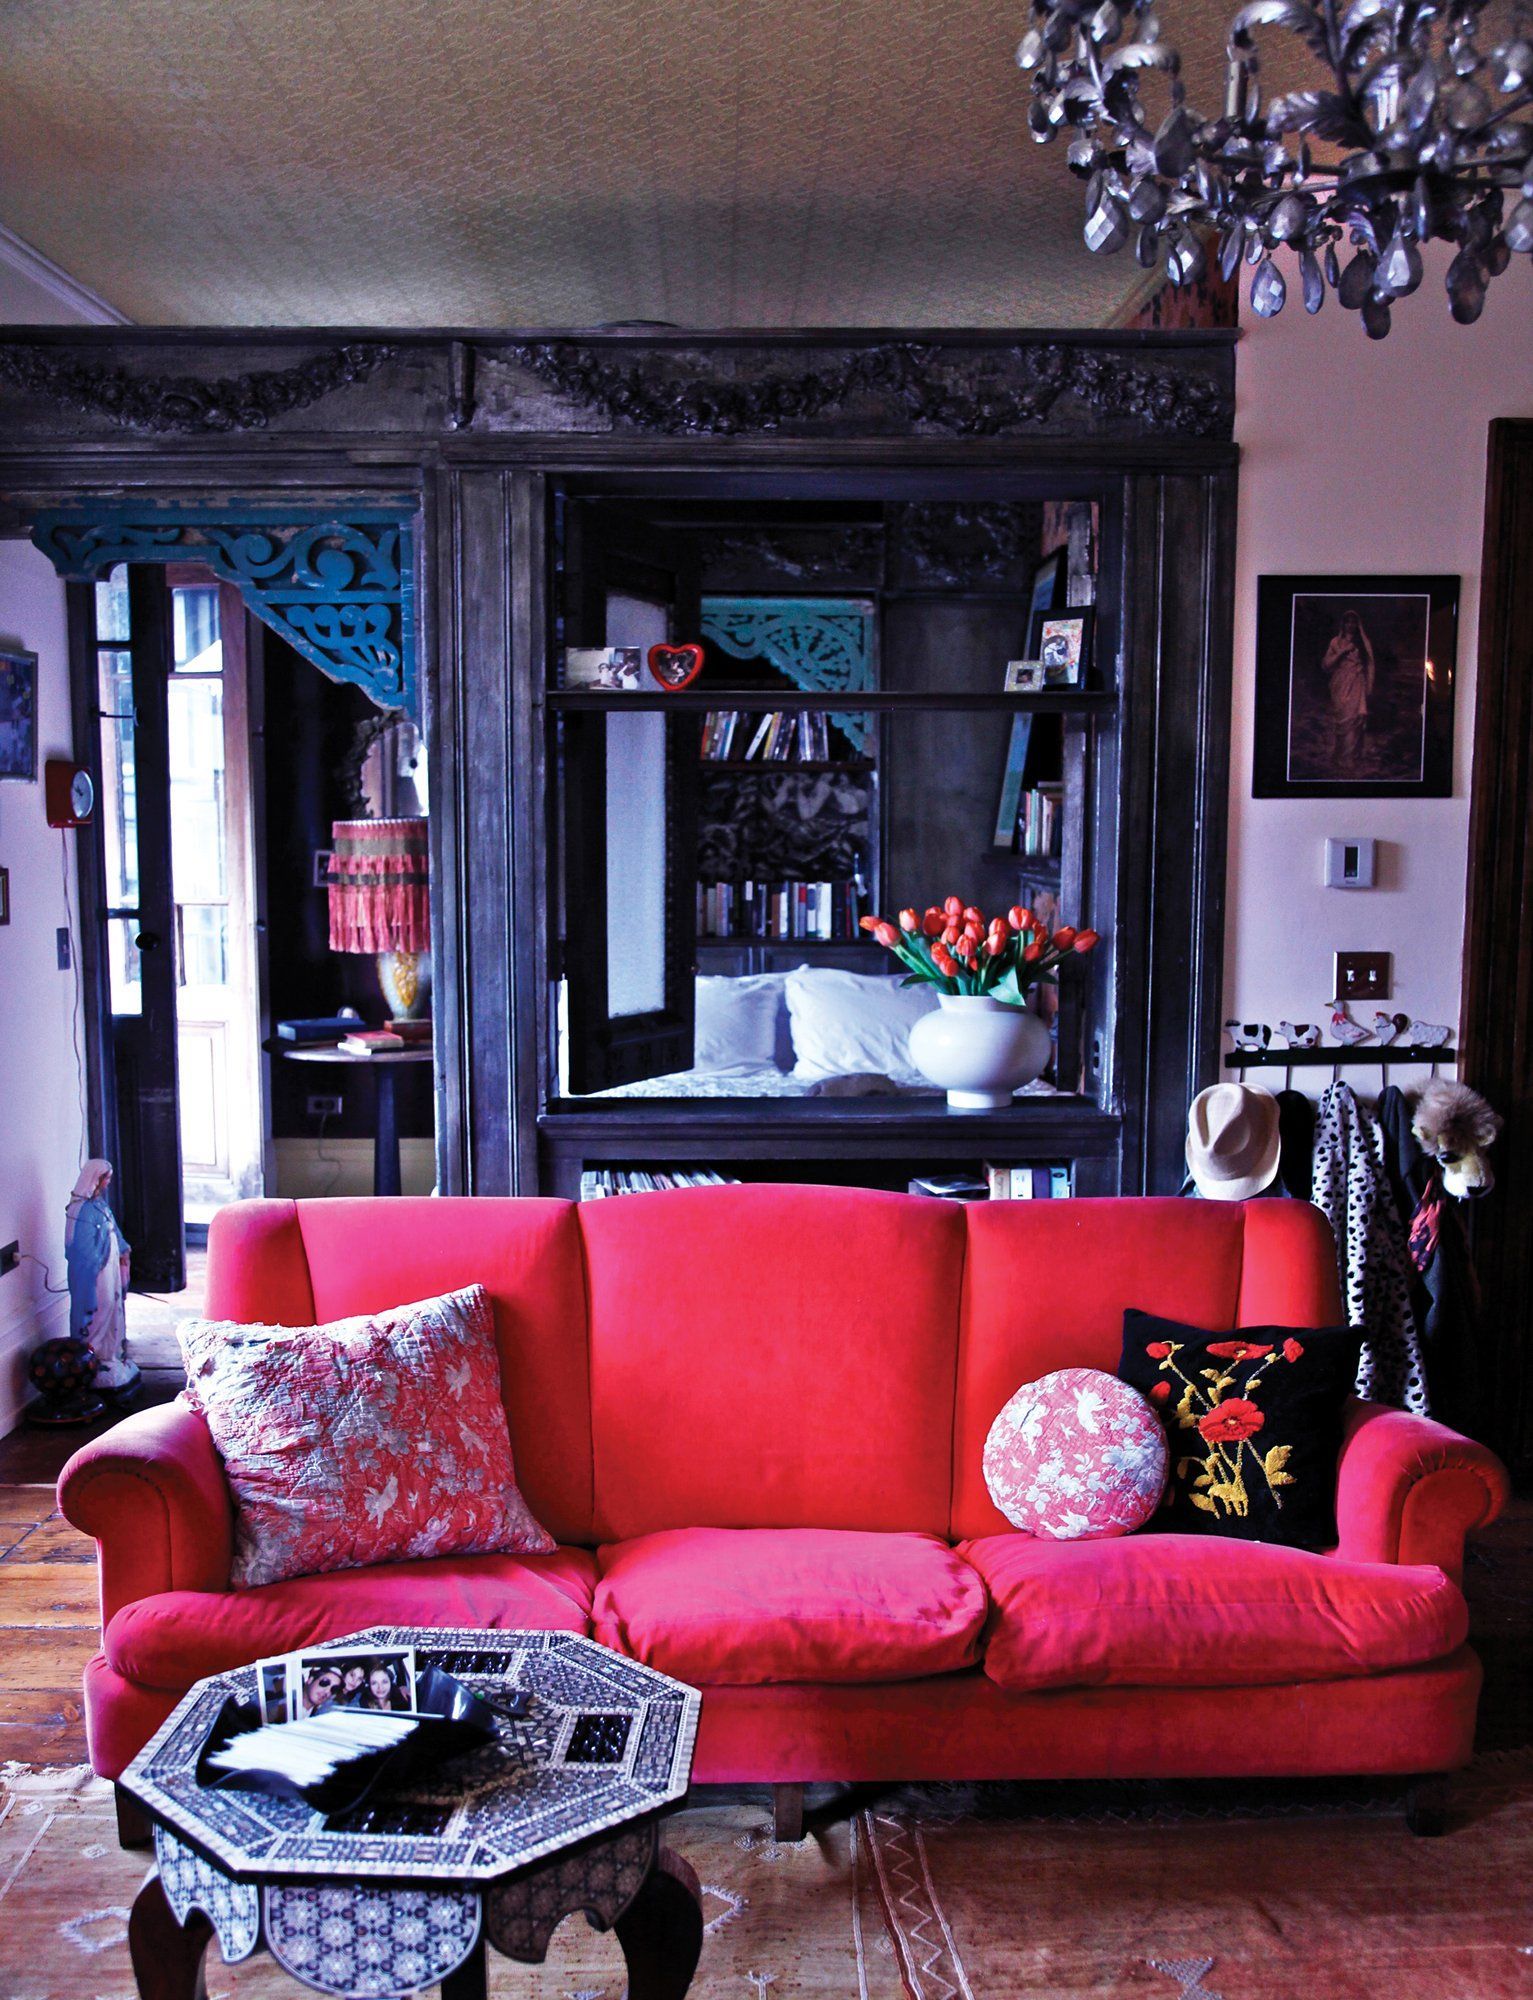 Inside Daring Rooms By Courtney Love, Julianne Moore, And Lena Dunhamu0027s Interior  Designer Of